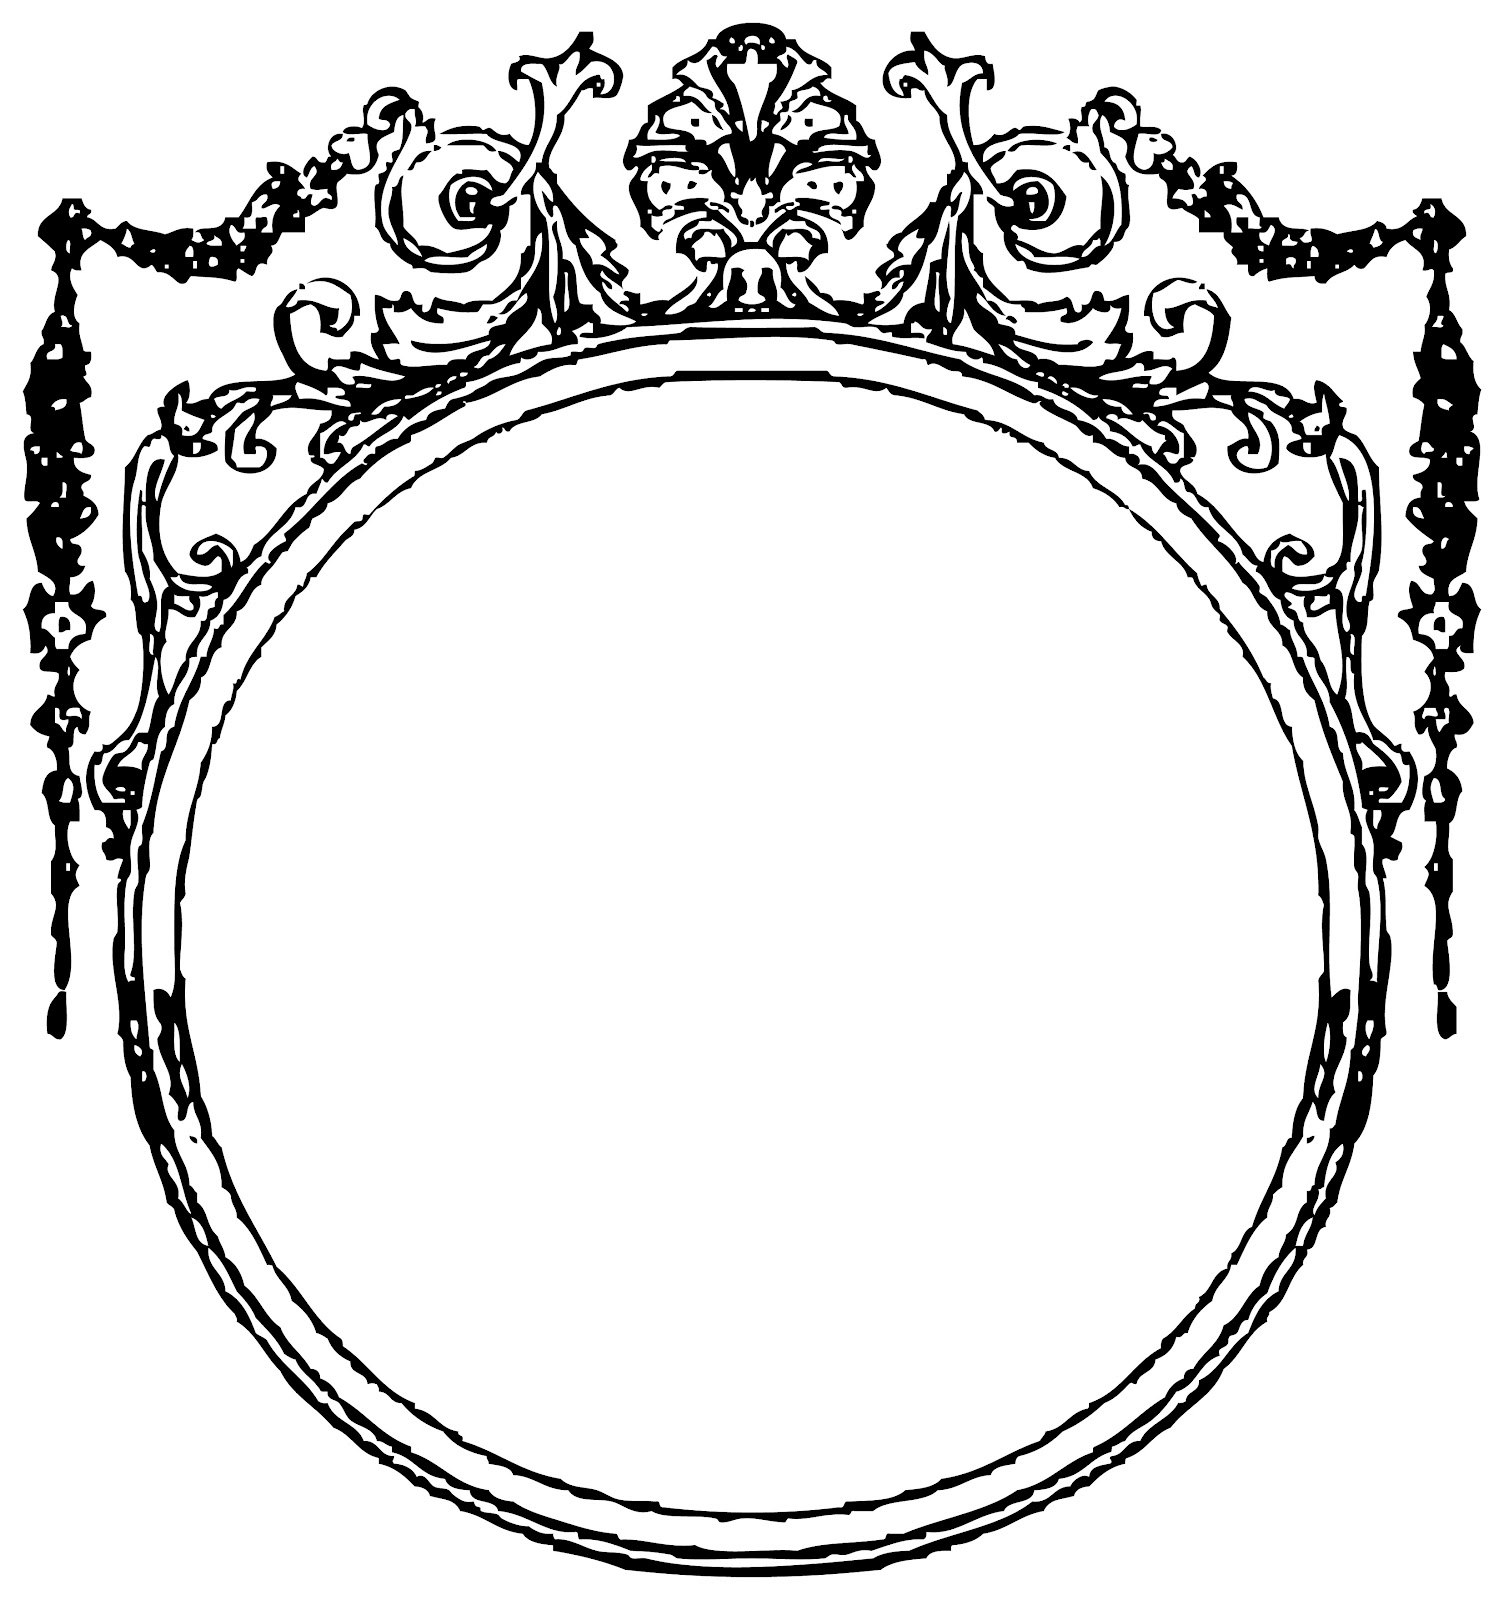 Free Vintage Lines Cliparts, Download Free Clip Art, Free